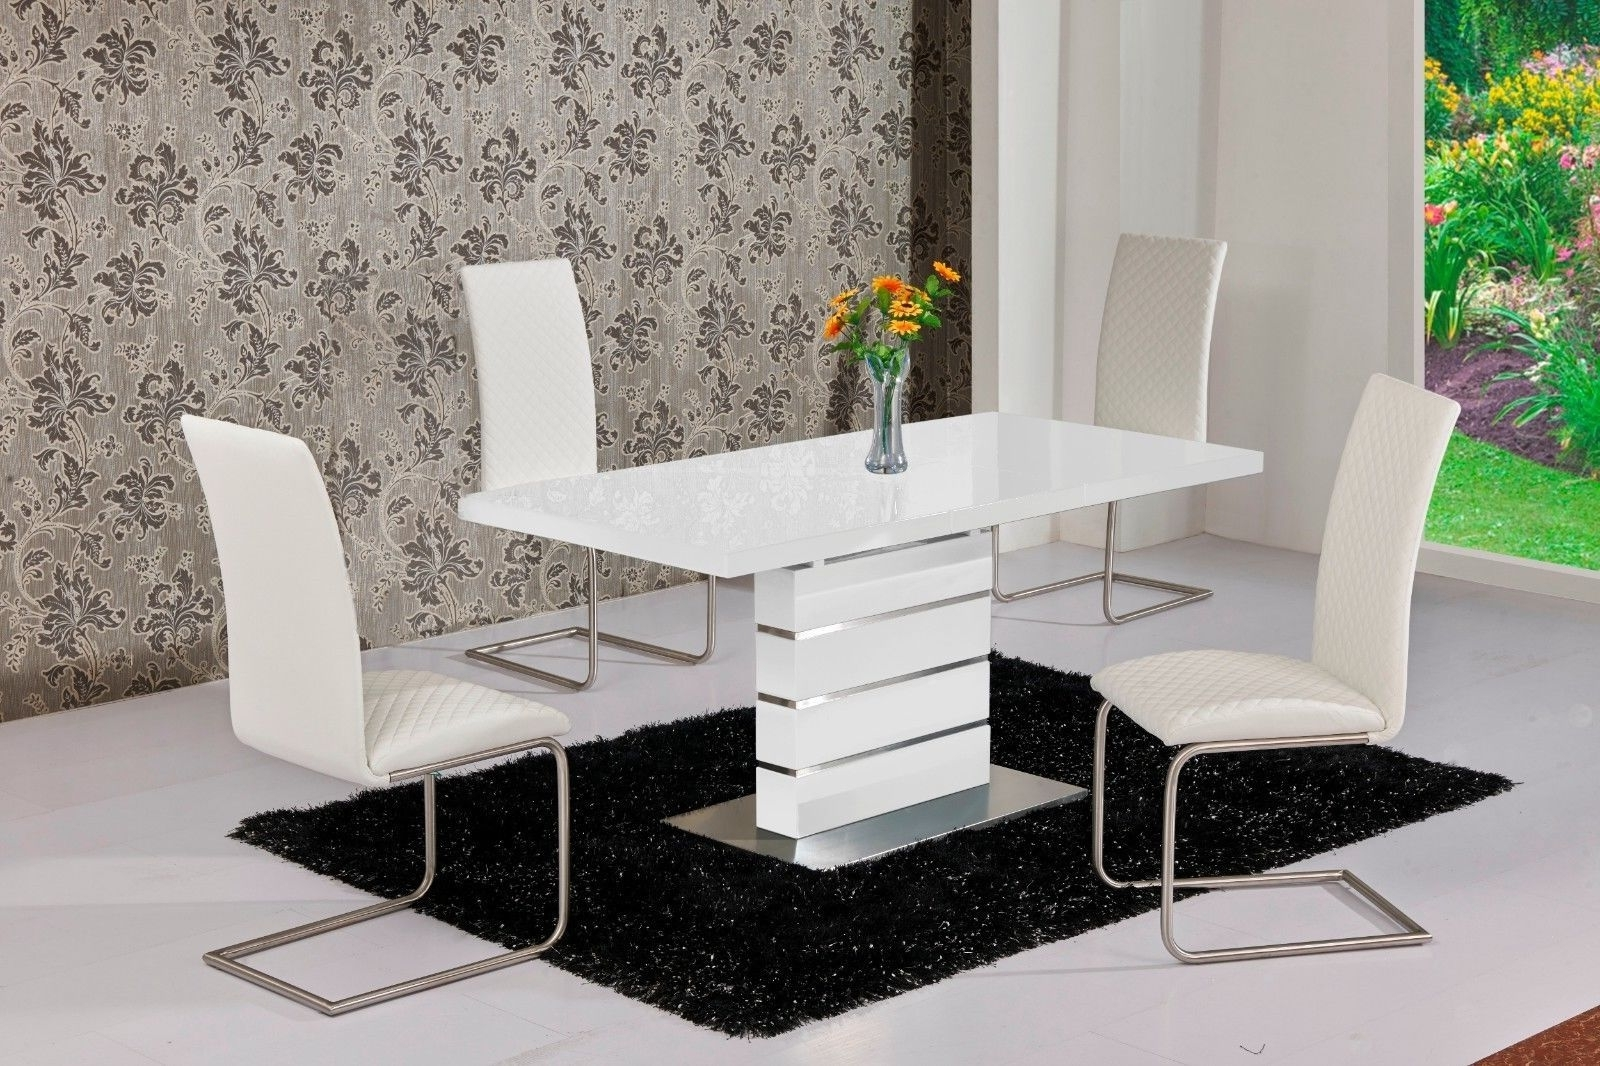 White Gloss Dining Tables 120Cm For Most Recent Mace High Gloss Extending 120 160 Dining Table & Chair Set – White (View 15 of 25)